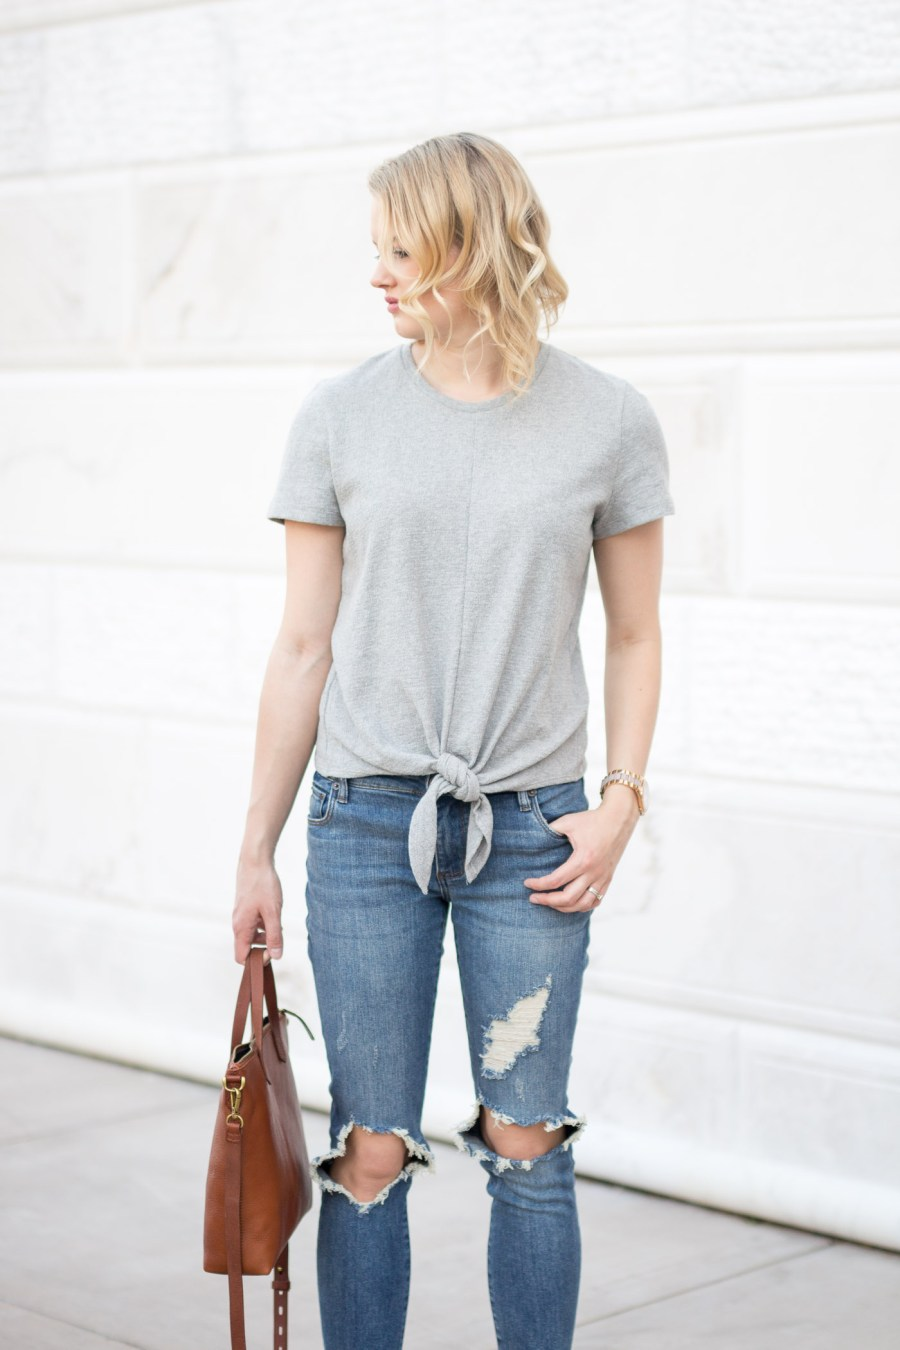 How To Style A Tie-Front Top, Madewell, spring outfit idea, fashion blog, Treats and Trends